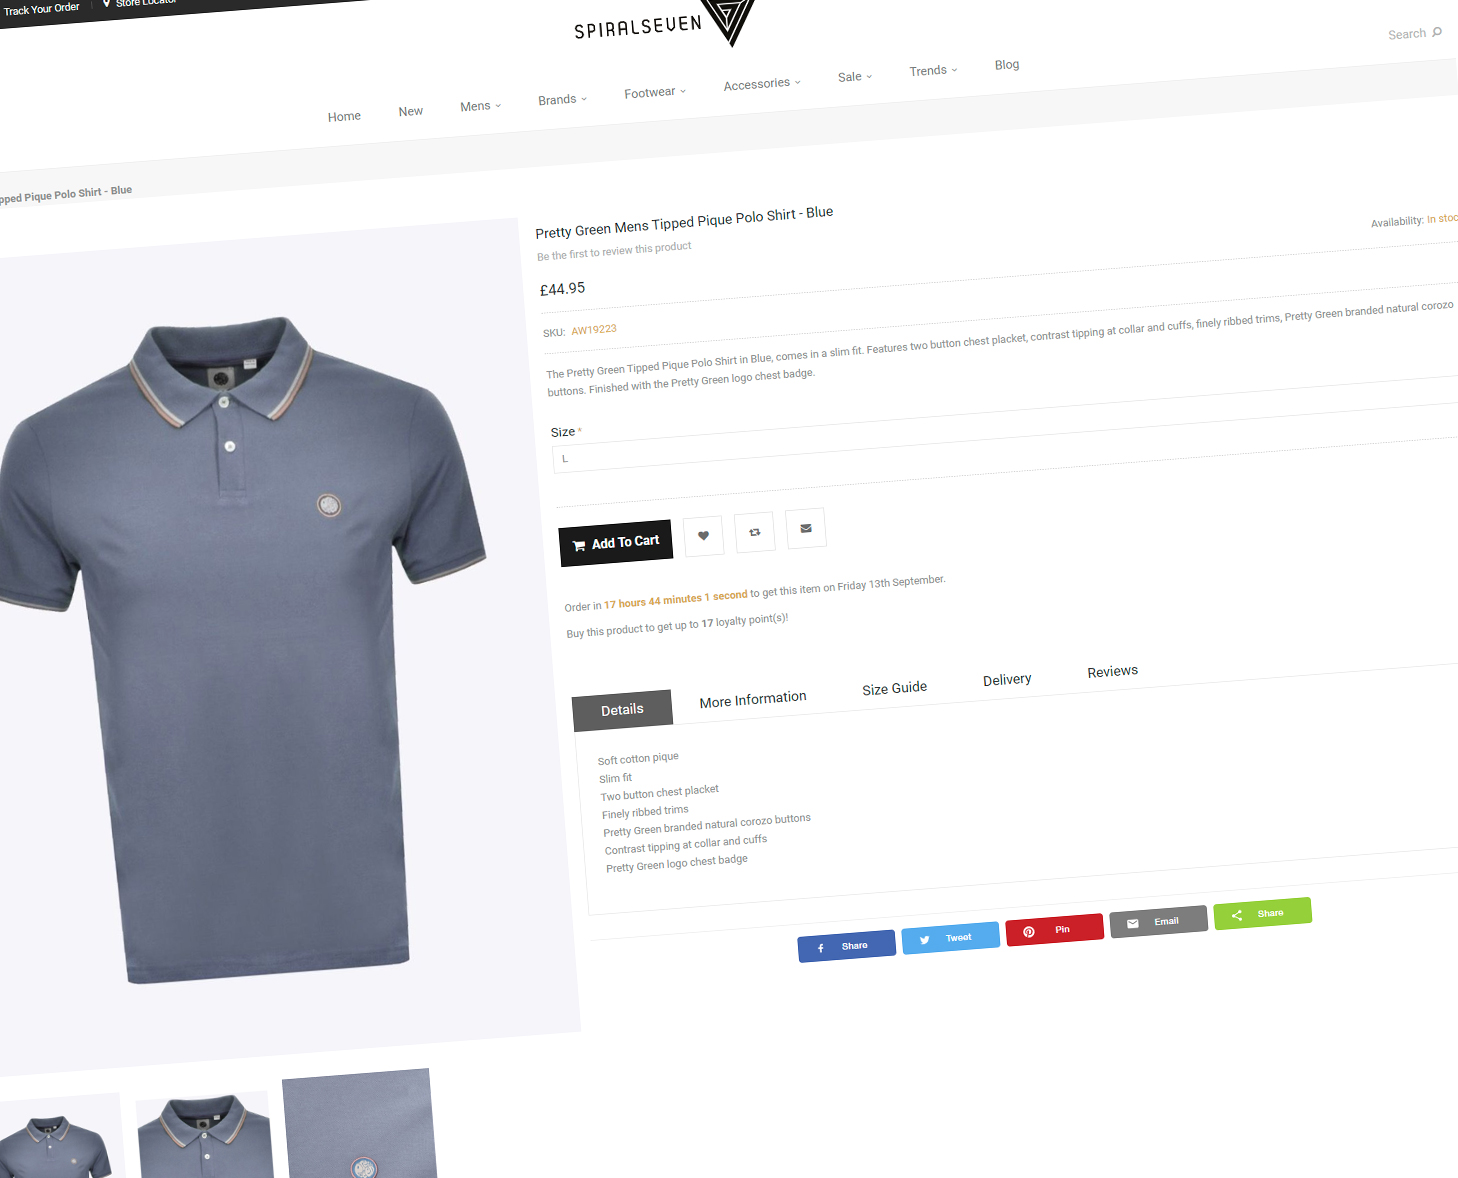 Spiral Seven Product Page